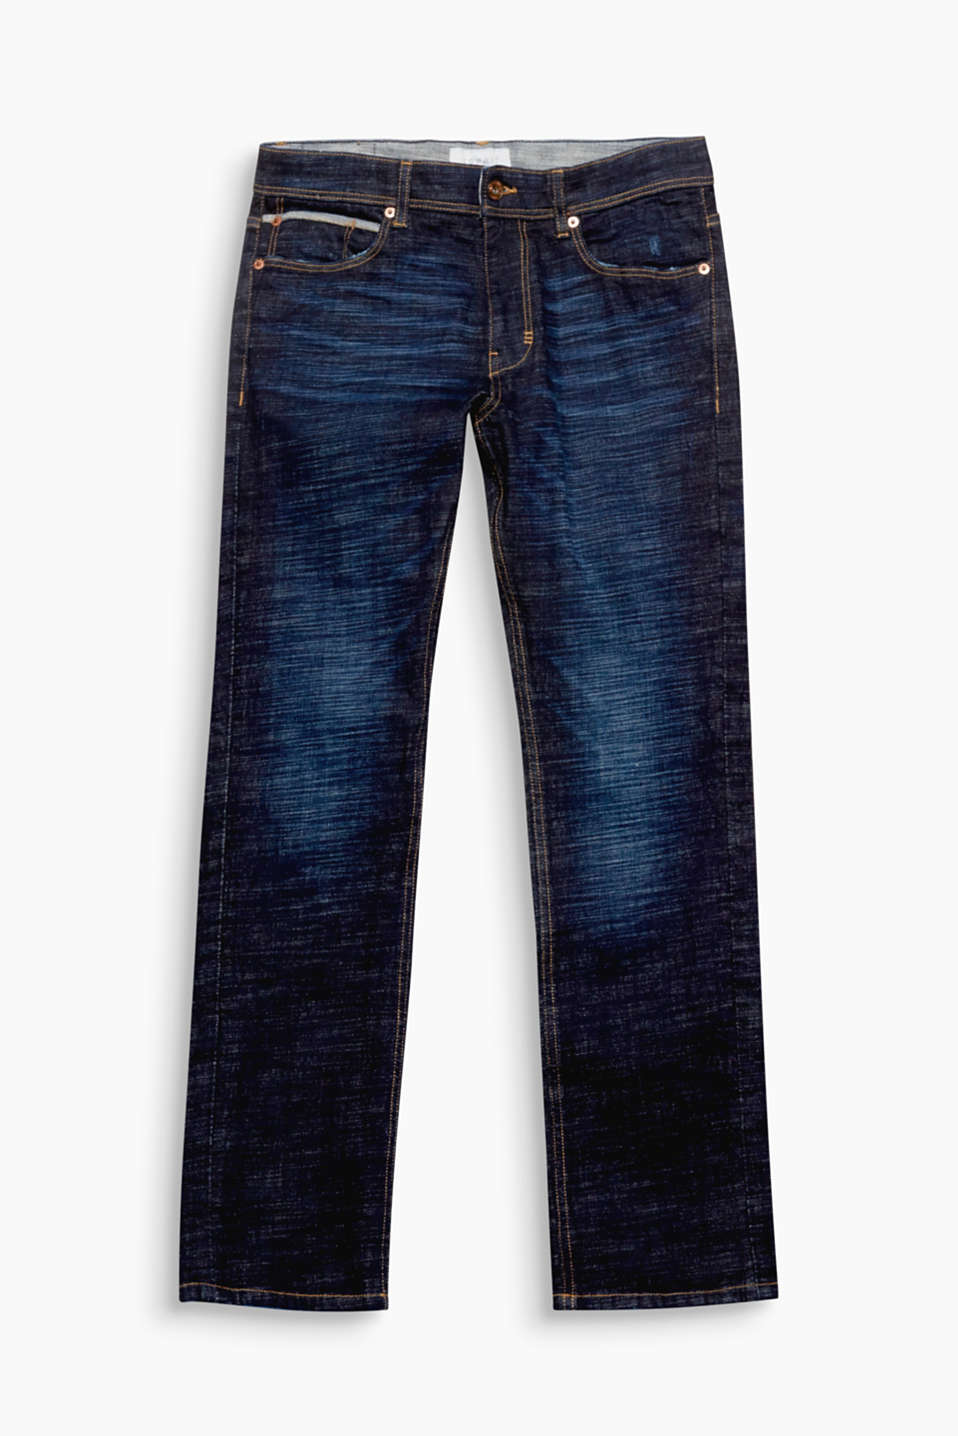 The striking vintage garment wash and straight cut make these jeans key for creating urban street style looks.